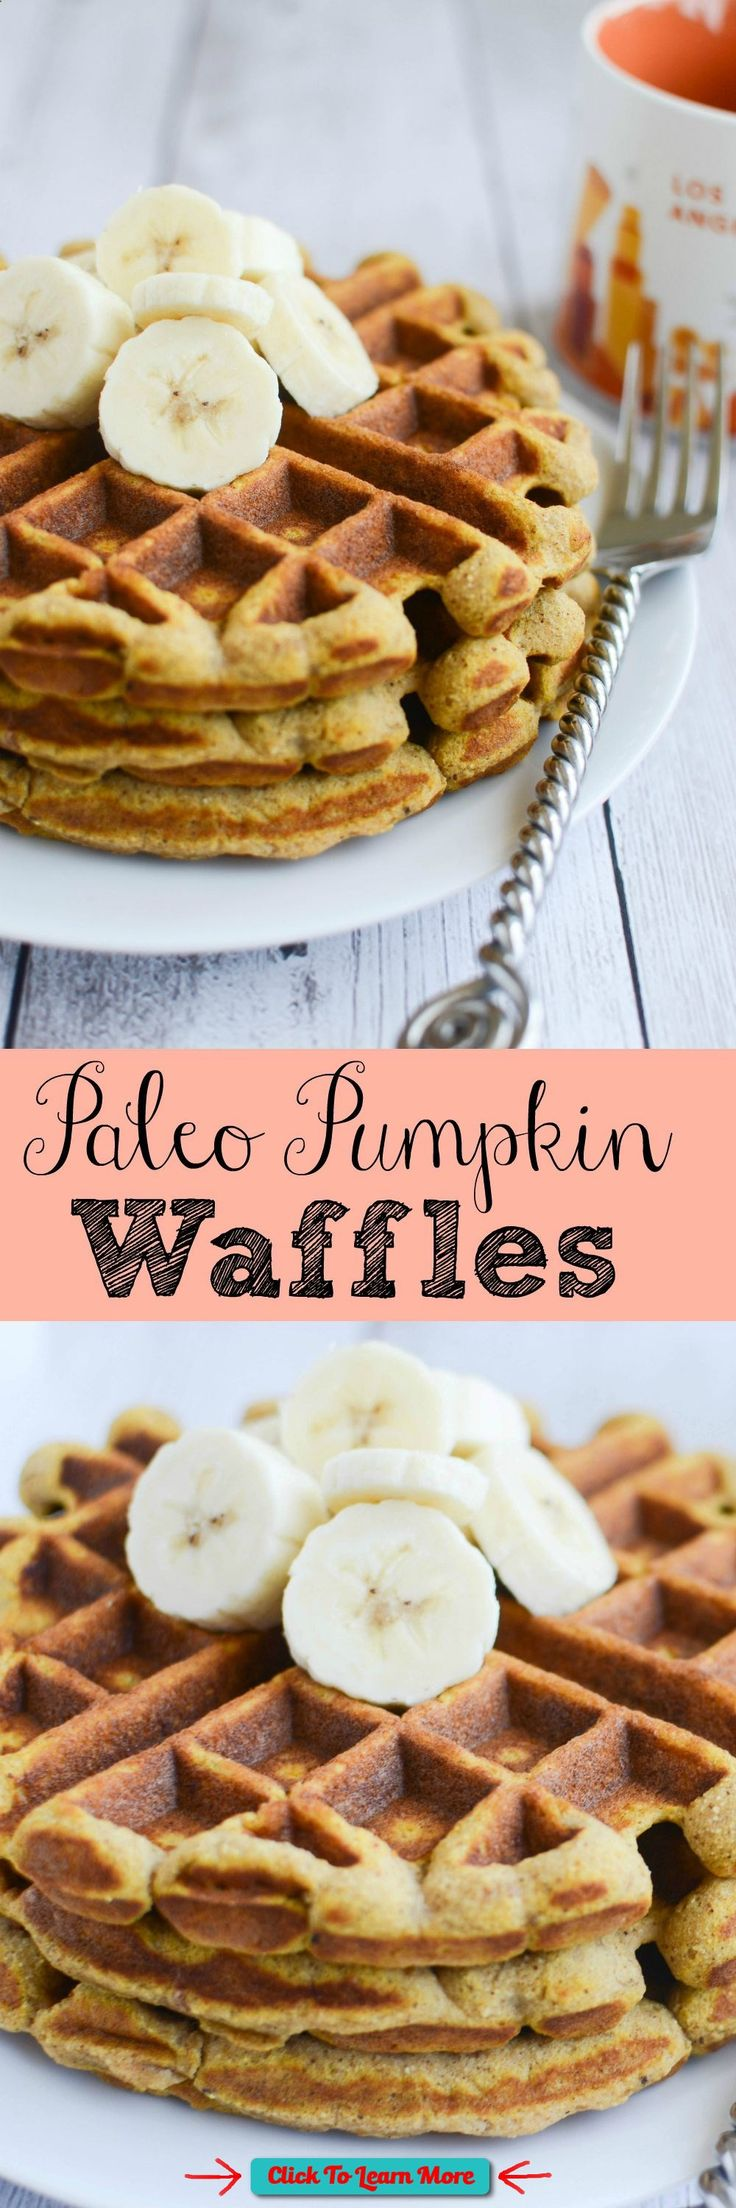 #FastestWayToLoseWeight by EATING, Click to learn more, Paleo Pumpkin Waffles - healthy and delicious waffles recipe! , #HealthyRecipes, #FitnessRecipes, #BurnFatRecipes, #WeightLossRecipes, #WeightLossDiets